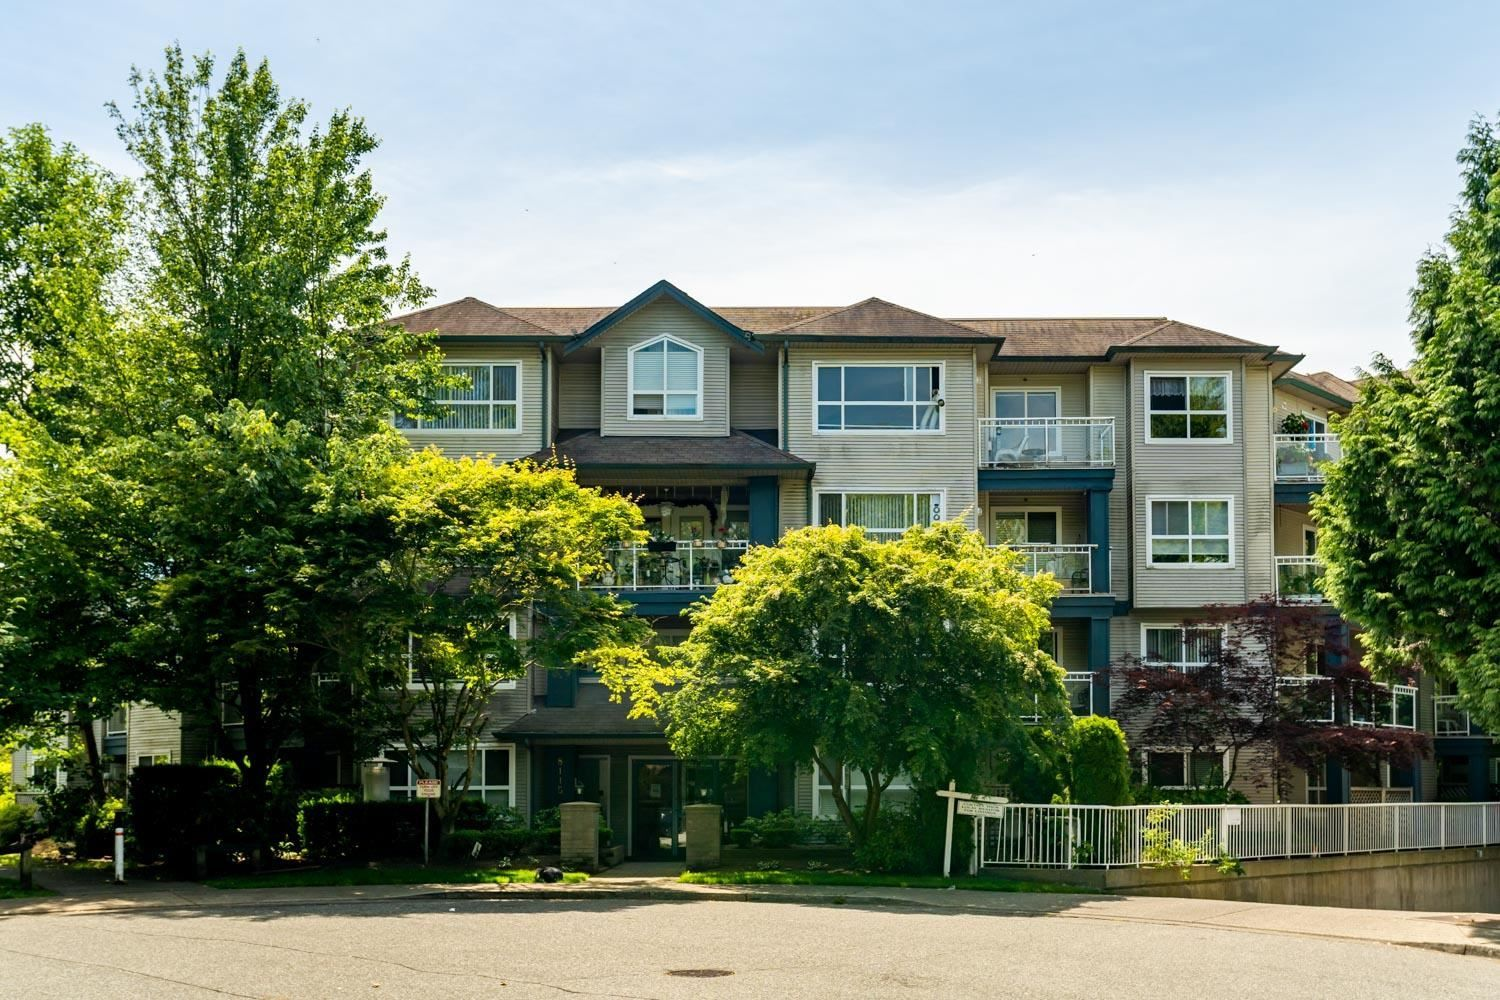 """Main Photo: 214 8115 121A Street in Surrey: Queen Mary Park Surrey Condo for sale in """"The Crossing"""" : MLS®# R2594503"""